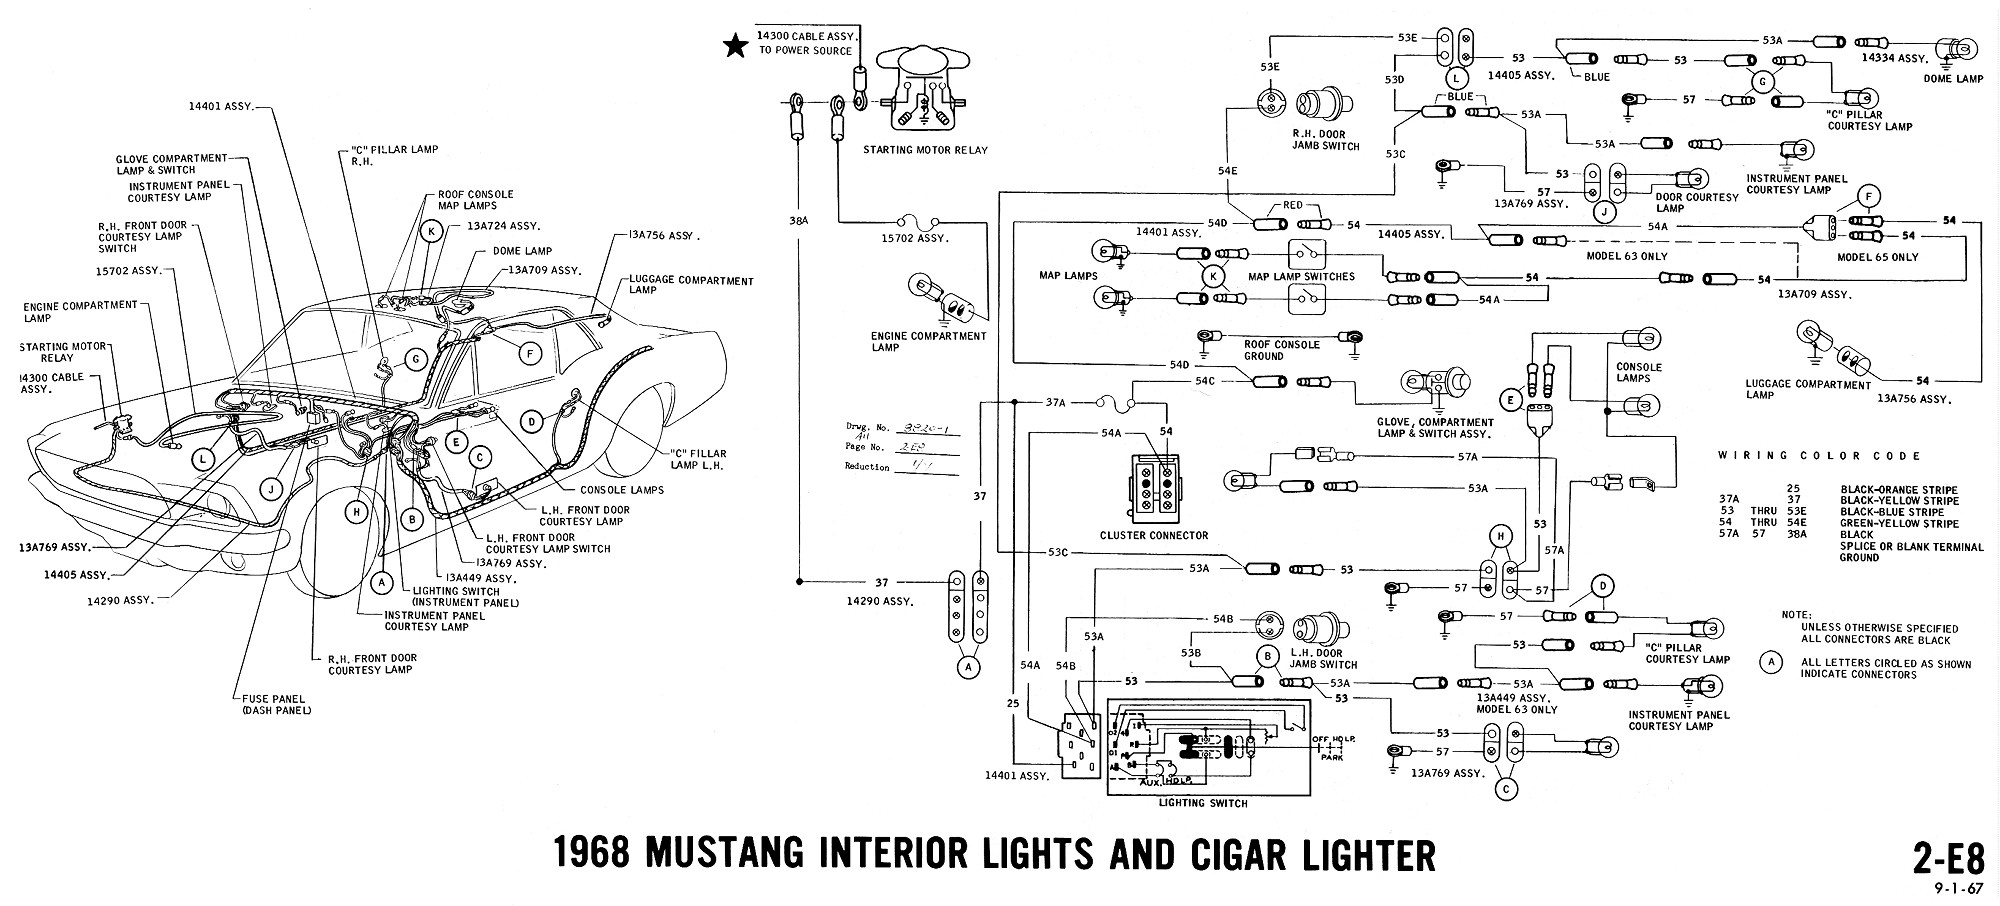 1968 mustang wiring diagram interior lights cigar lighter 1968 mustang wiring diagrams and vacuum schematics average joe Turn Signal Relay Wiring Diagram at mifinder.co